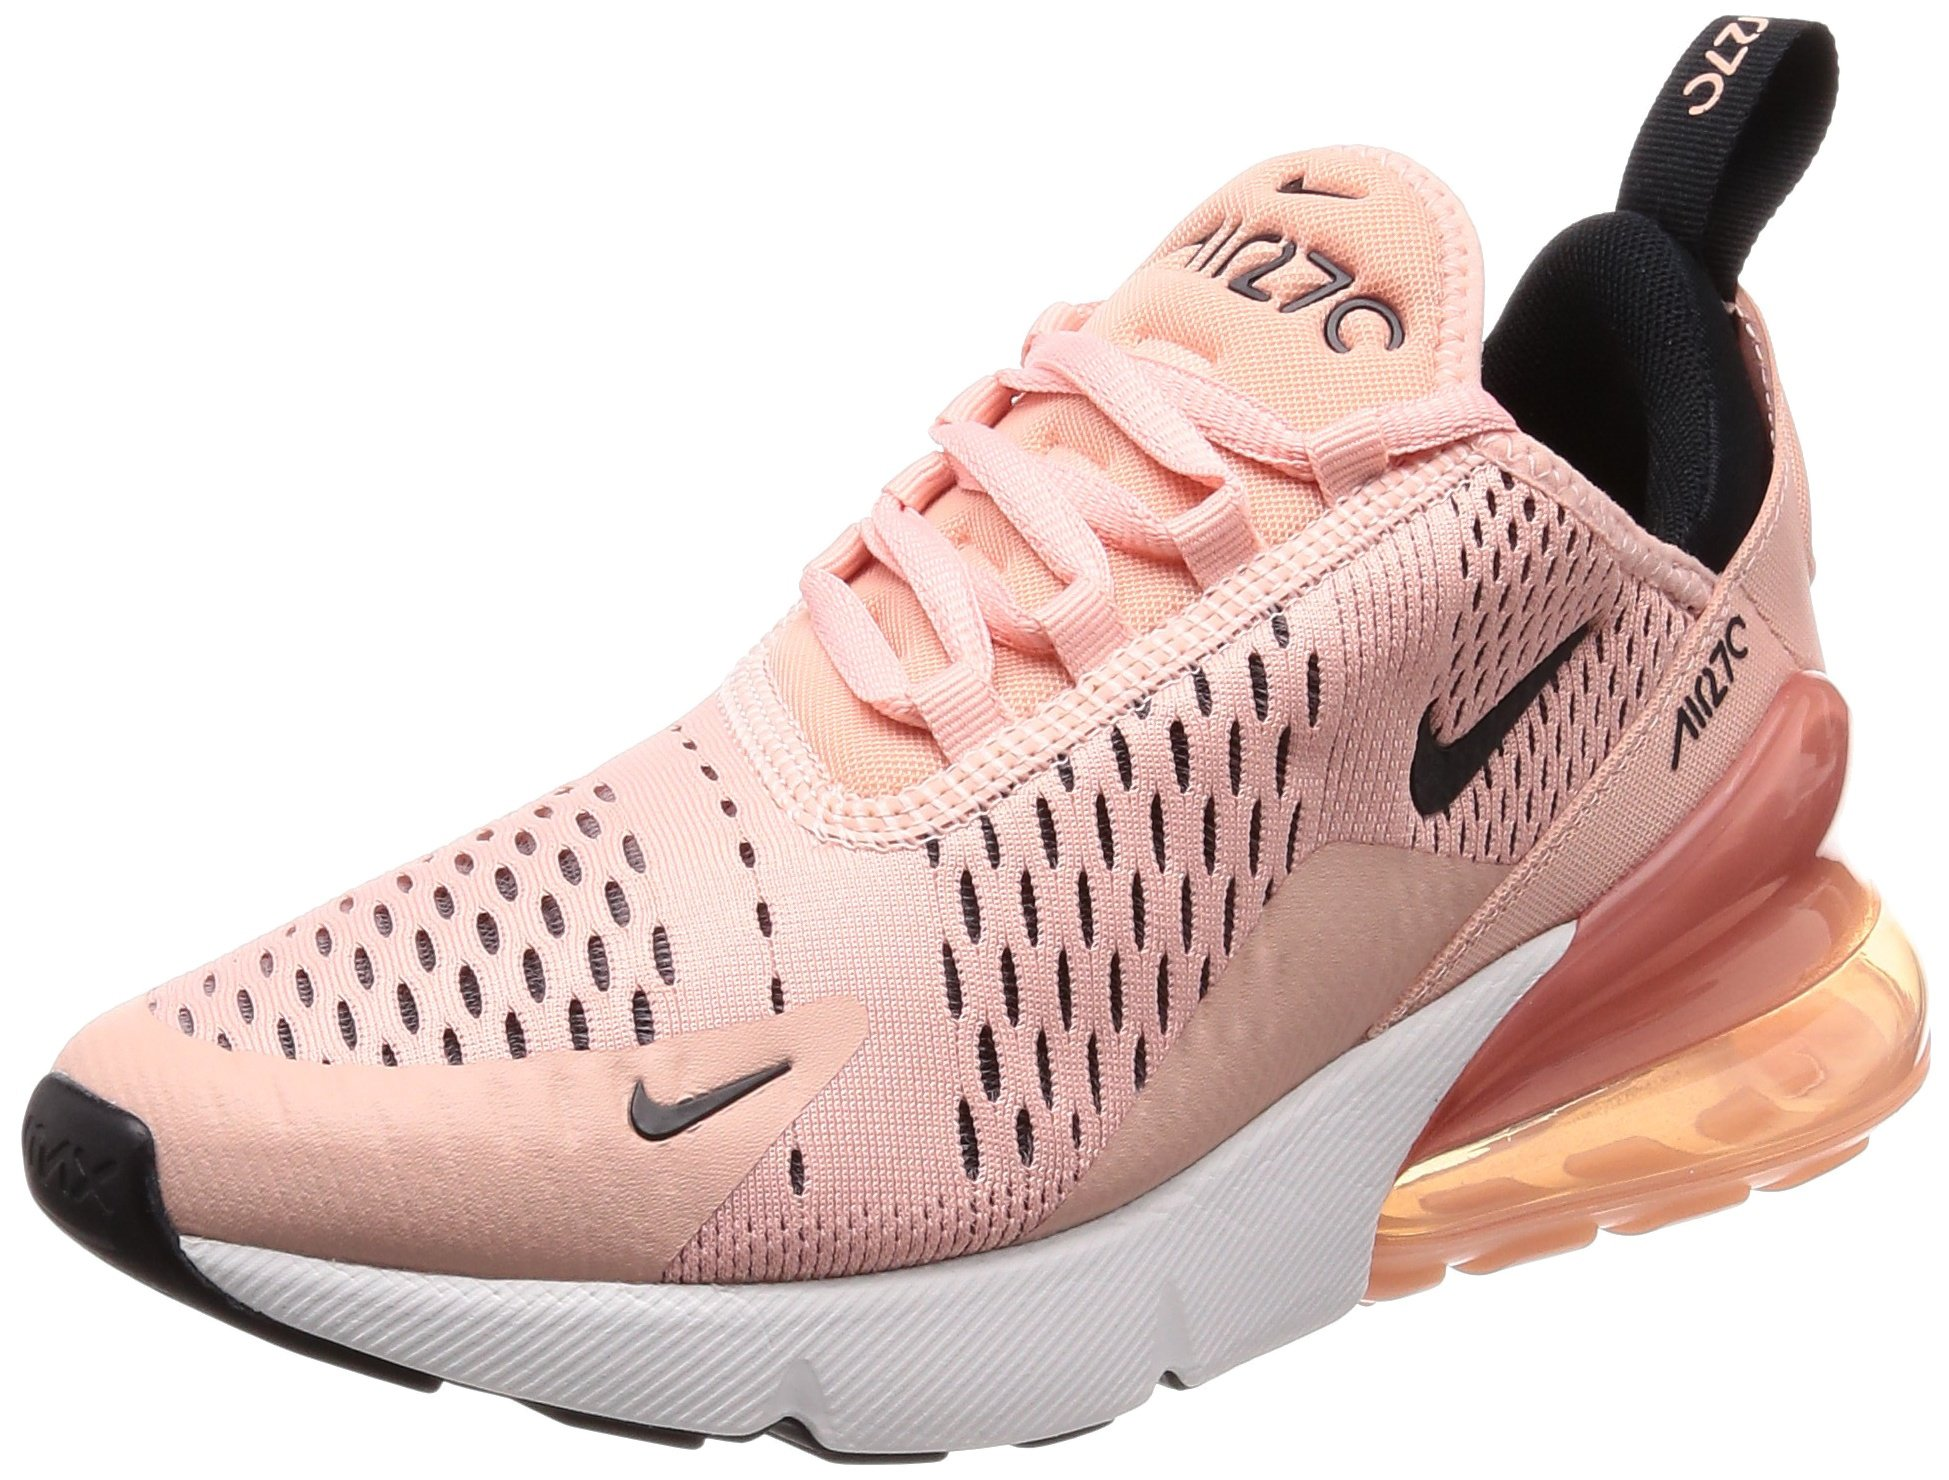 promo code 48f62 5d2fa Nike Women's WMNS Air Max 270, Coral Stardust/Black-Summit White, 7 M US